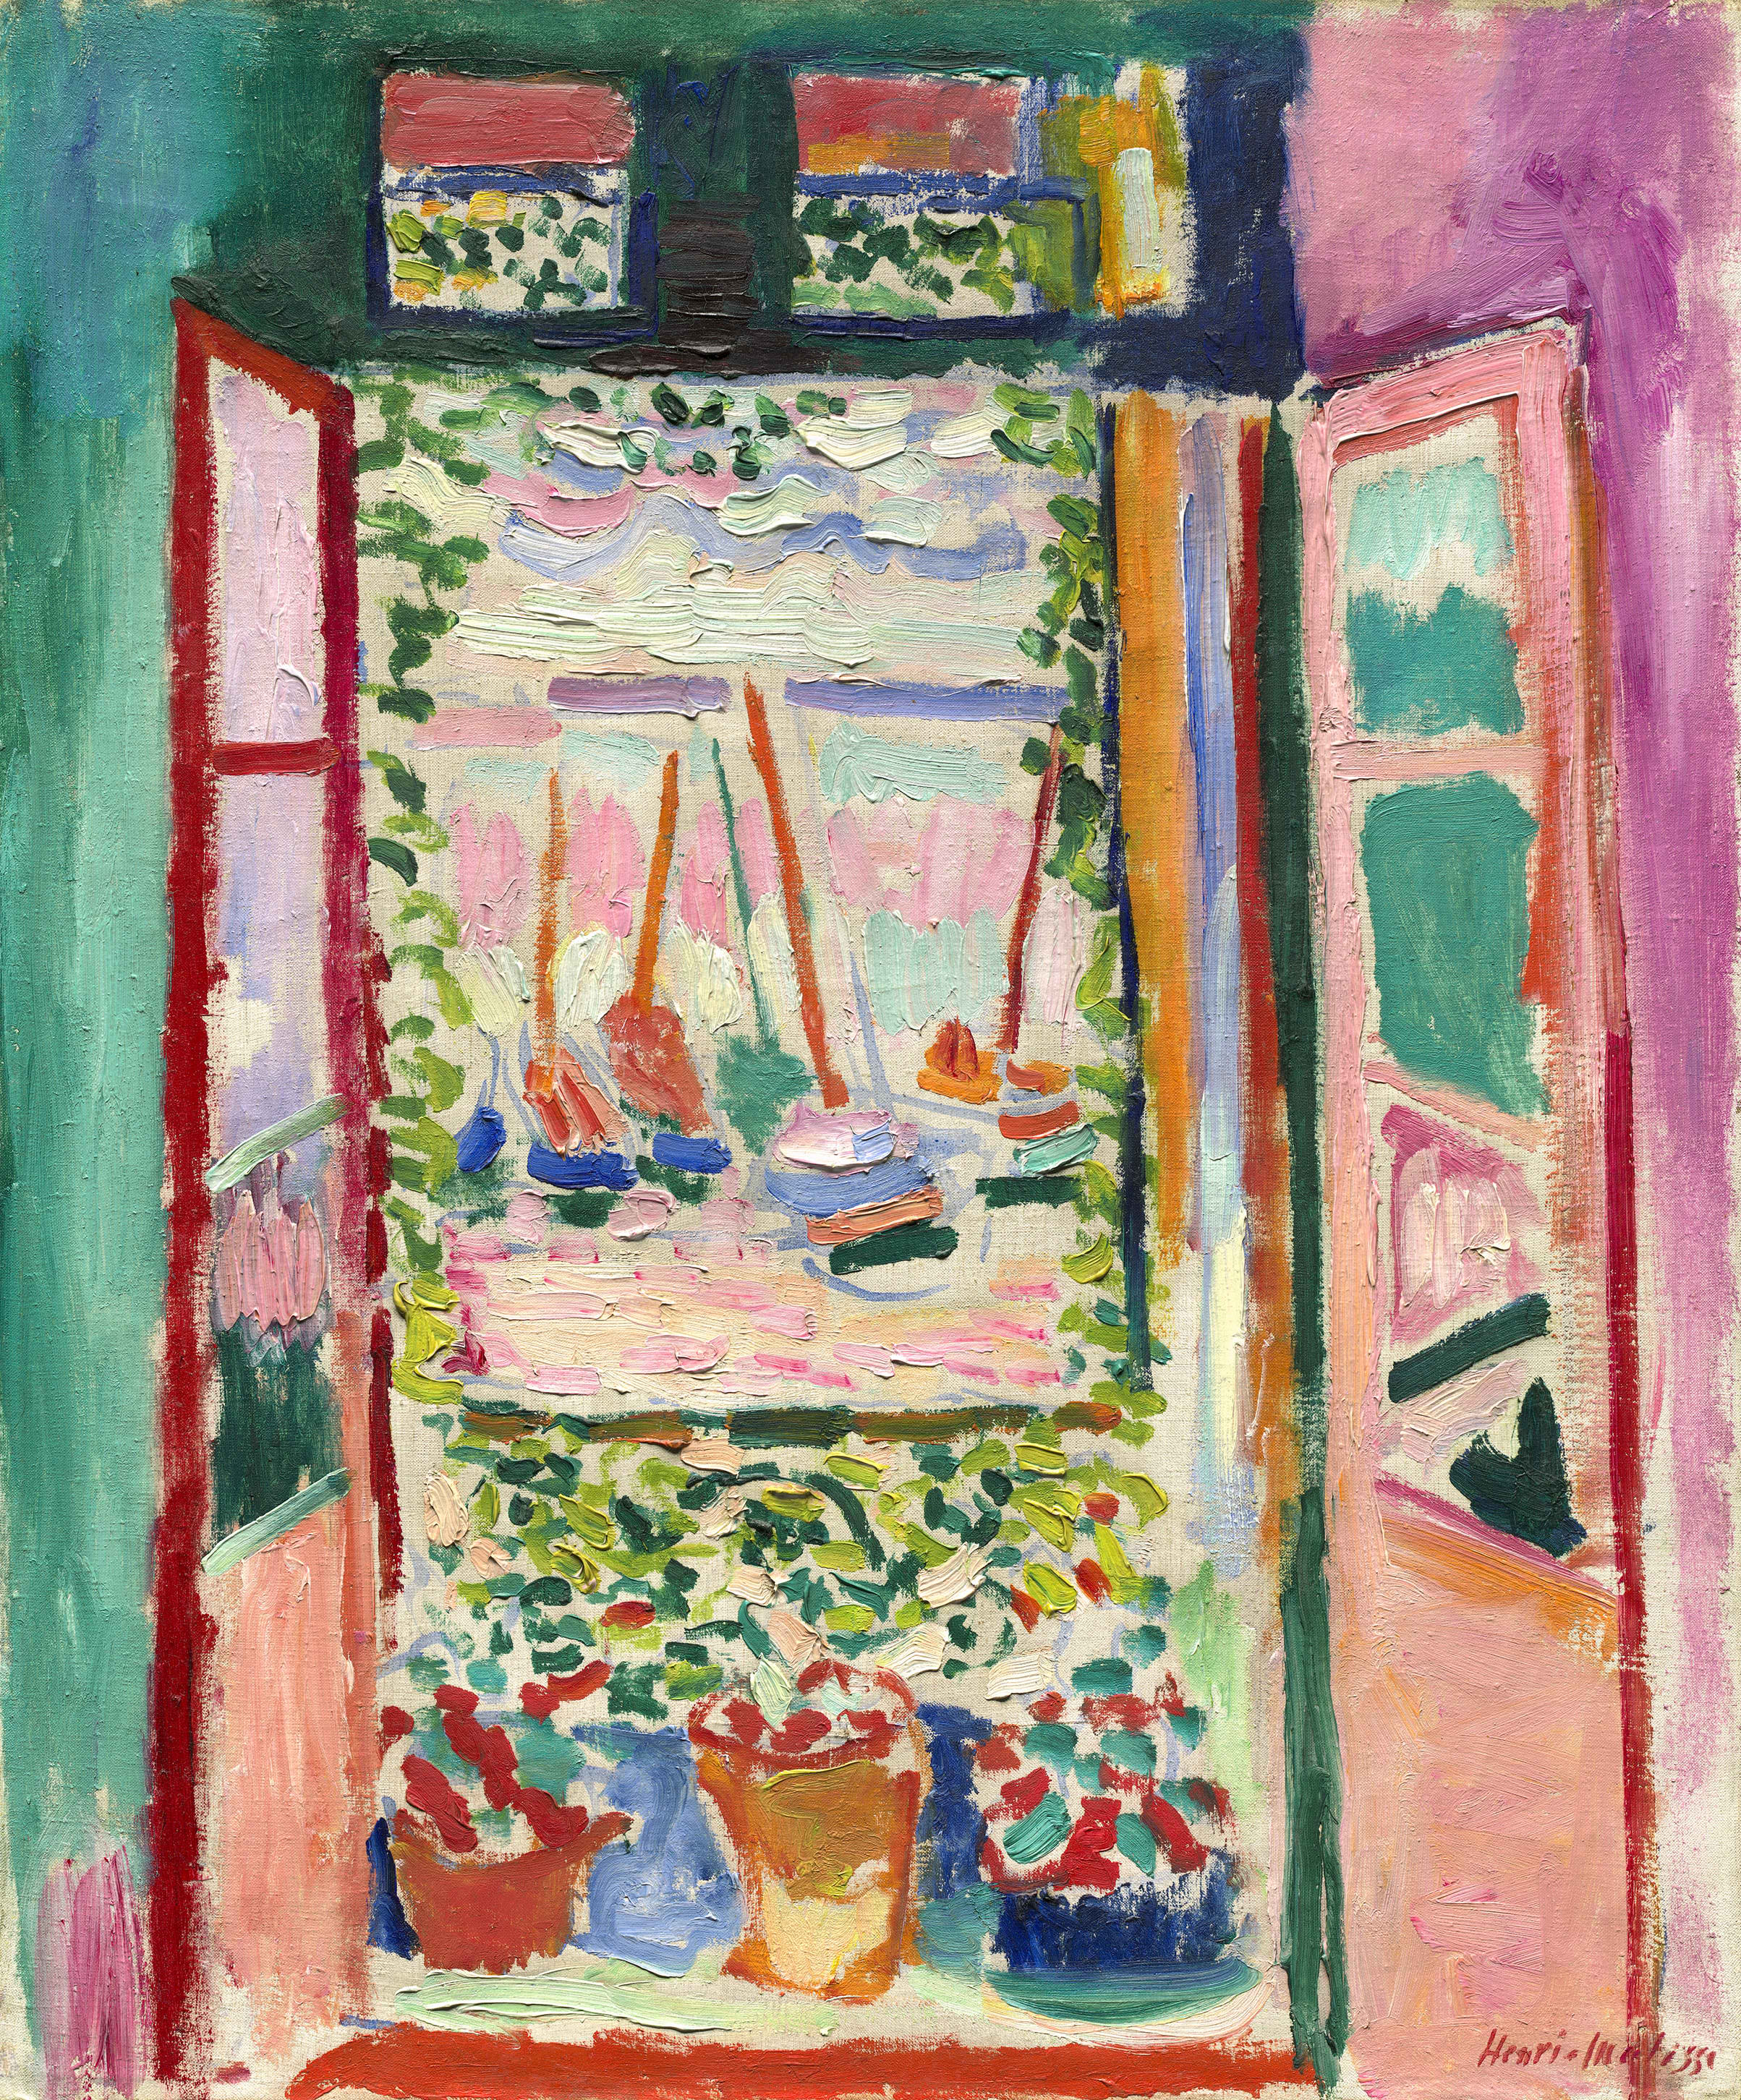 Henri Matisse - Das offene Fenster / The open window